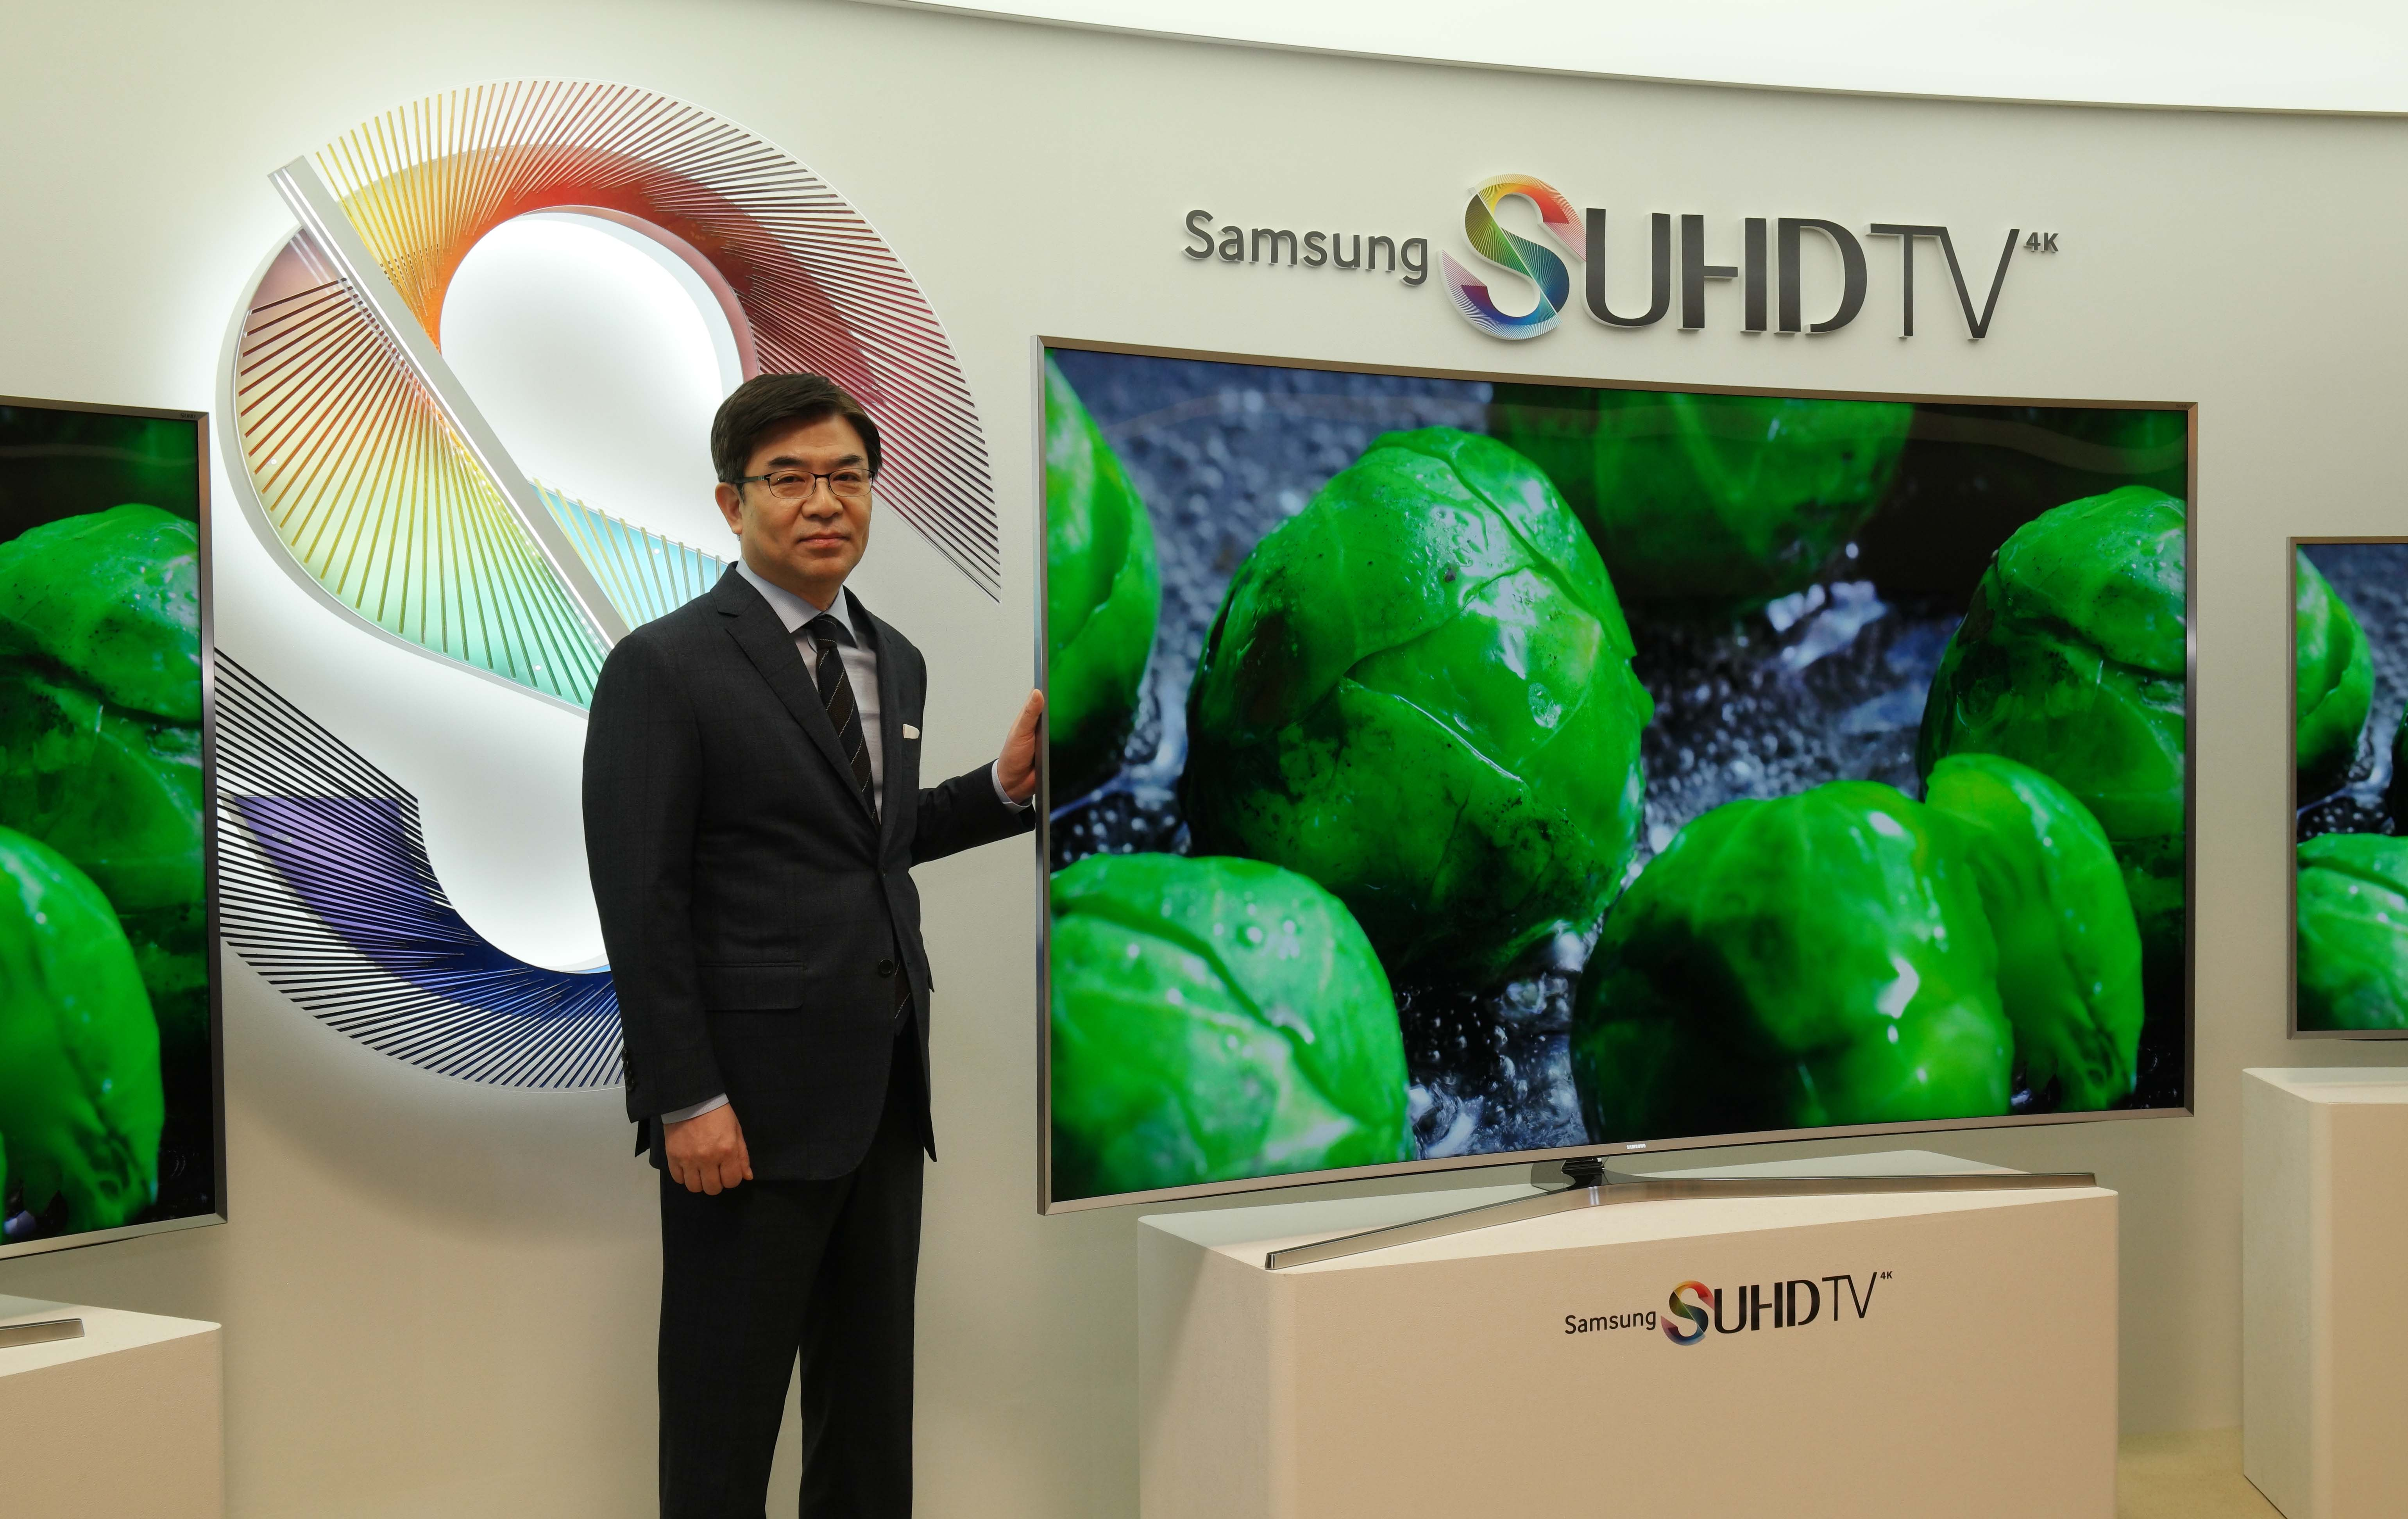 Kim Hyun-suk, president of the V business at Samsung Electronics, stands next to a Samsung SUHD TV.